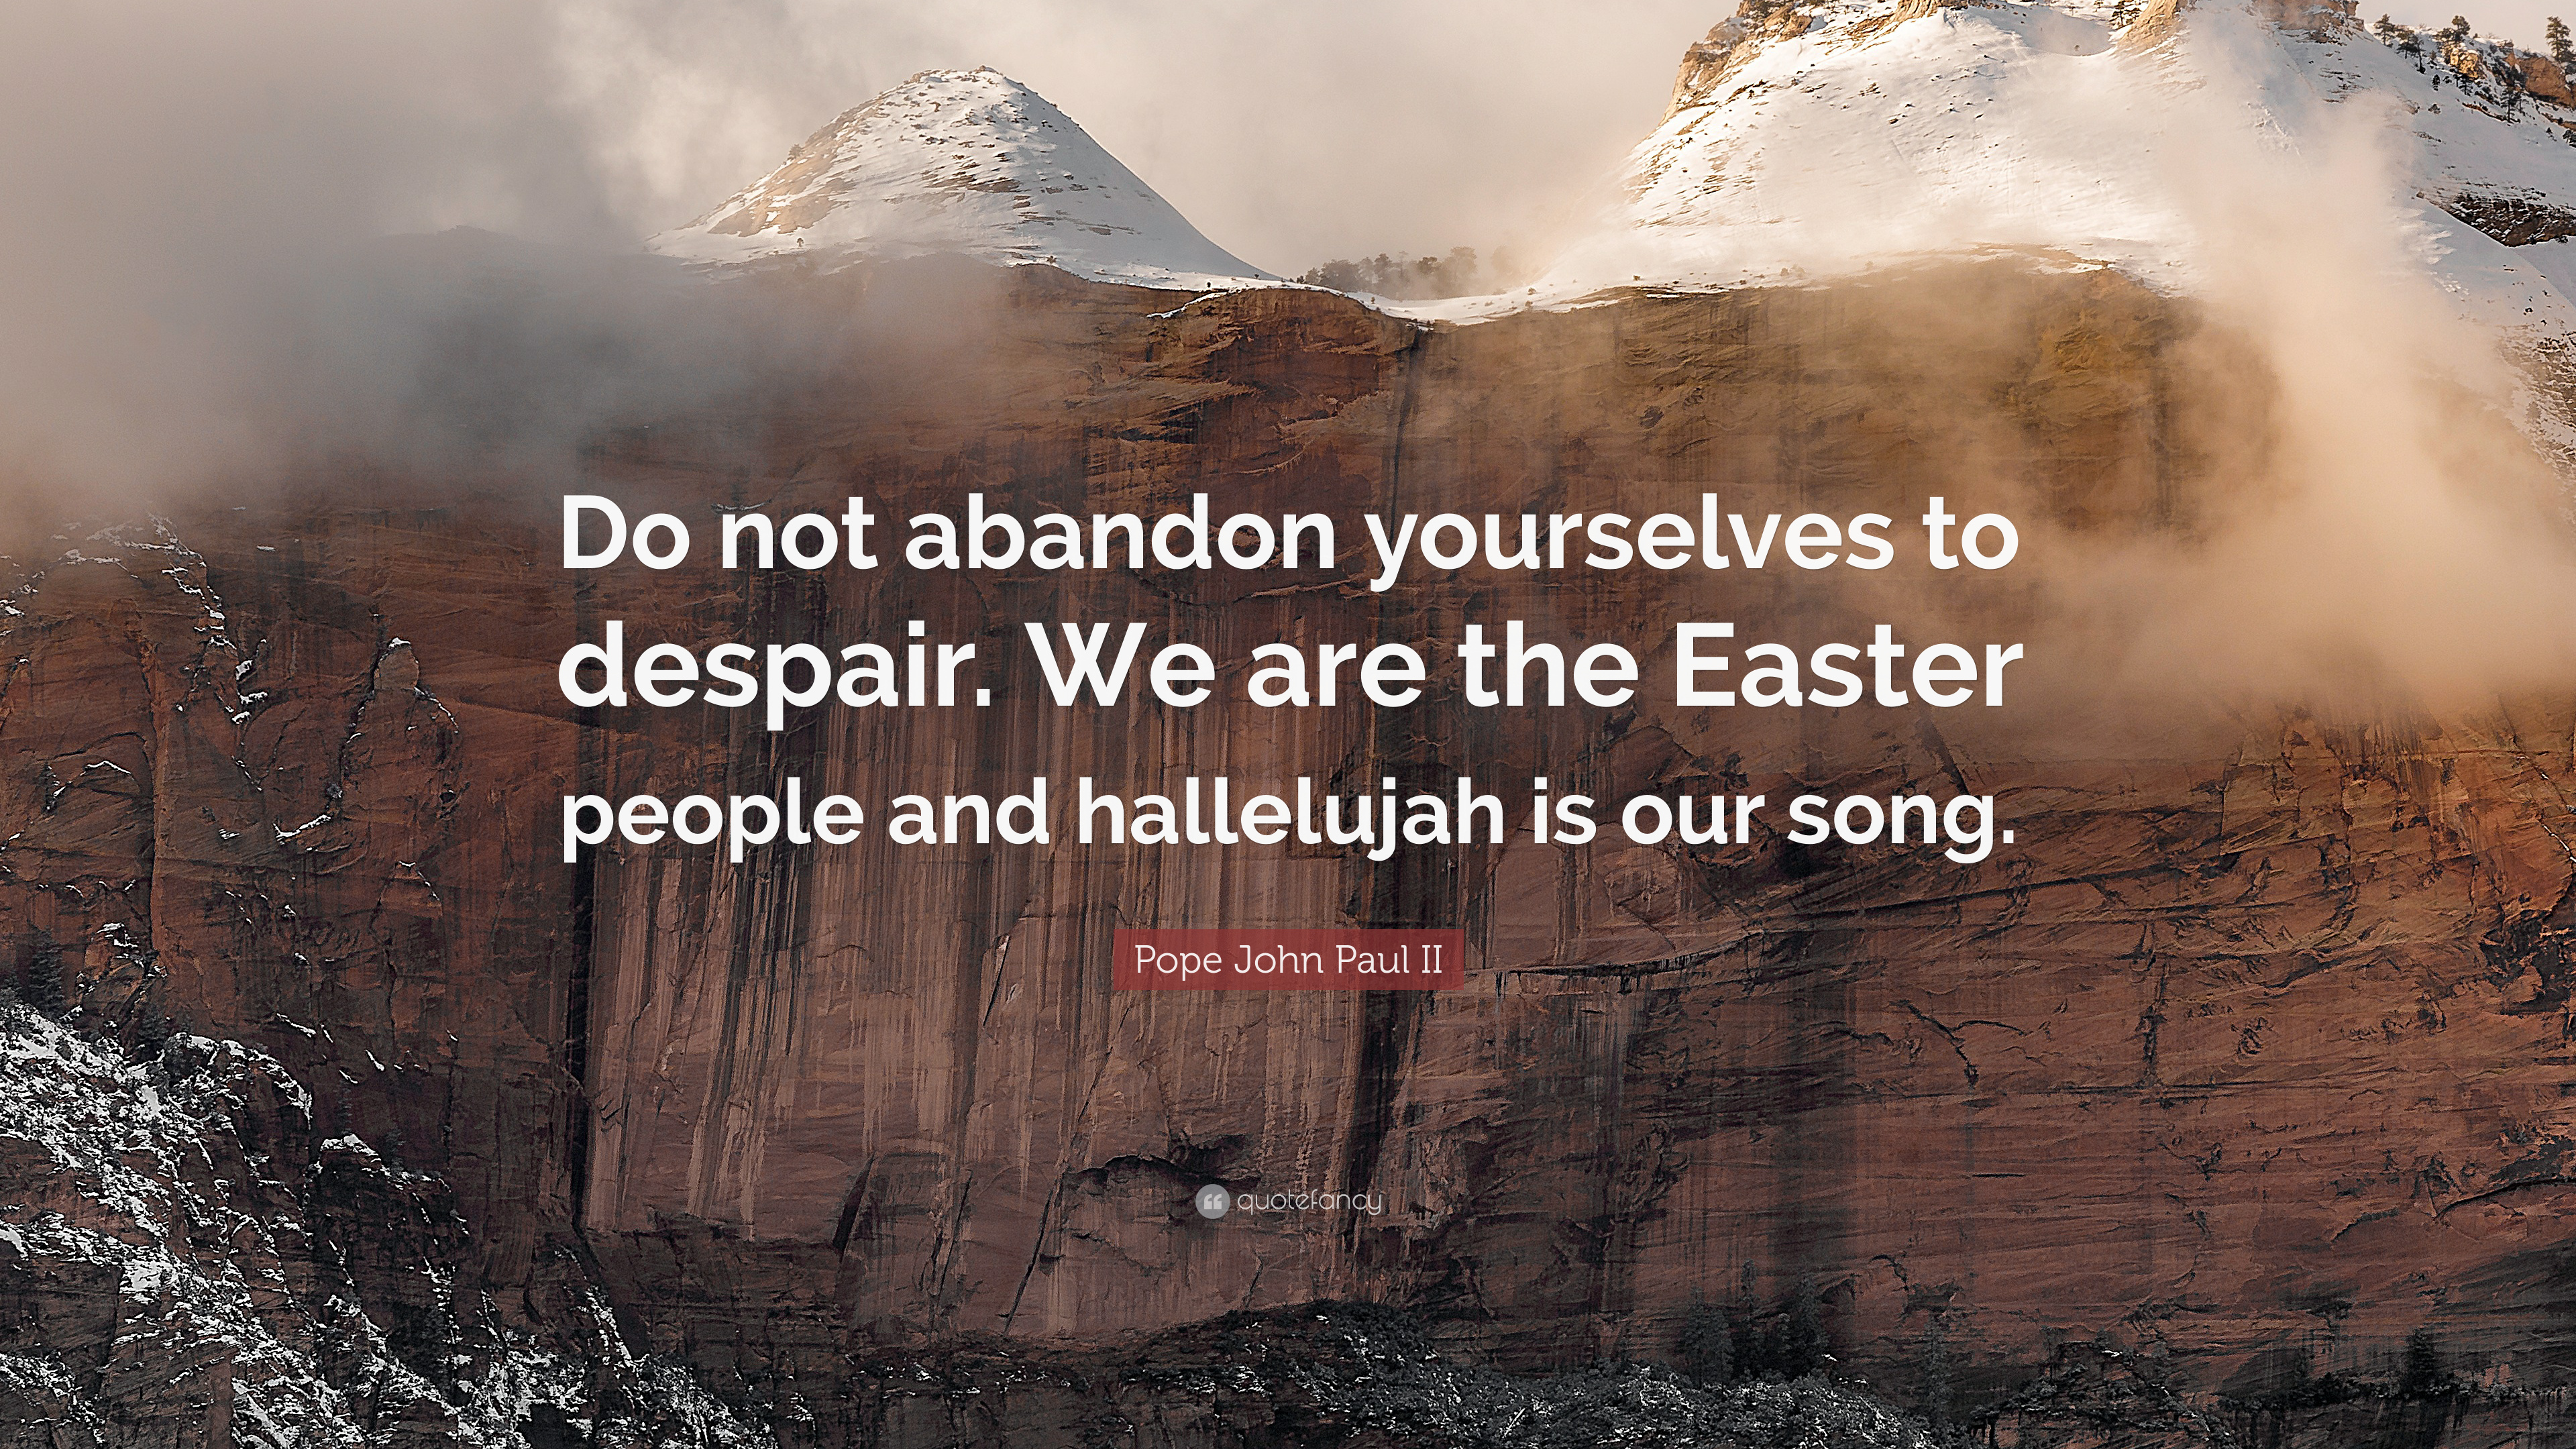 Pope John Paul Ii Quote Do Not Abandon Yourselves To Despair We